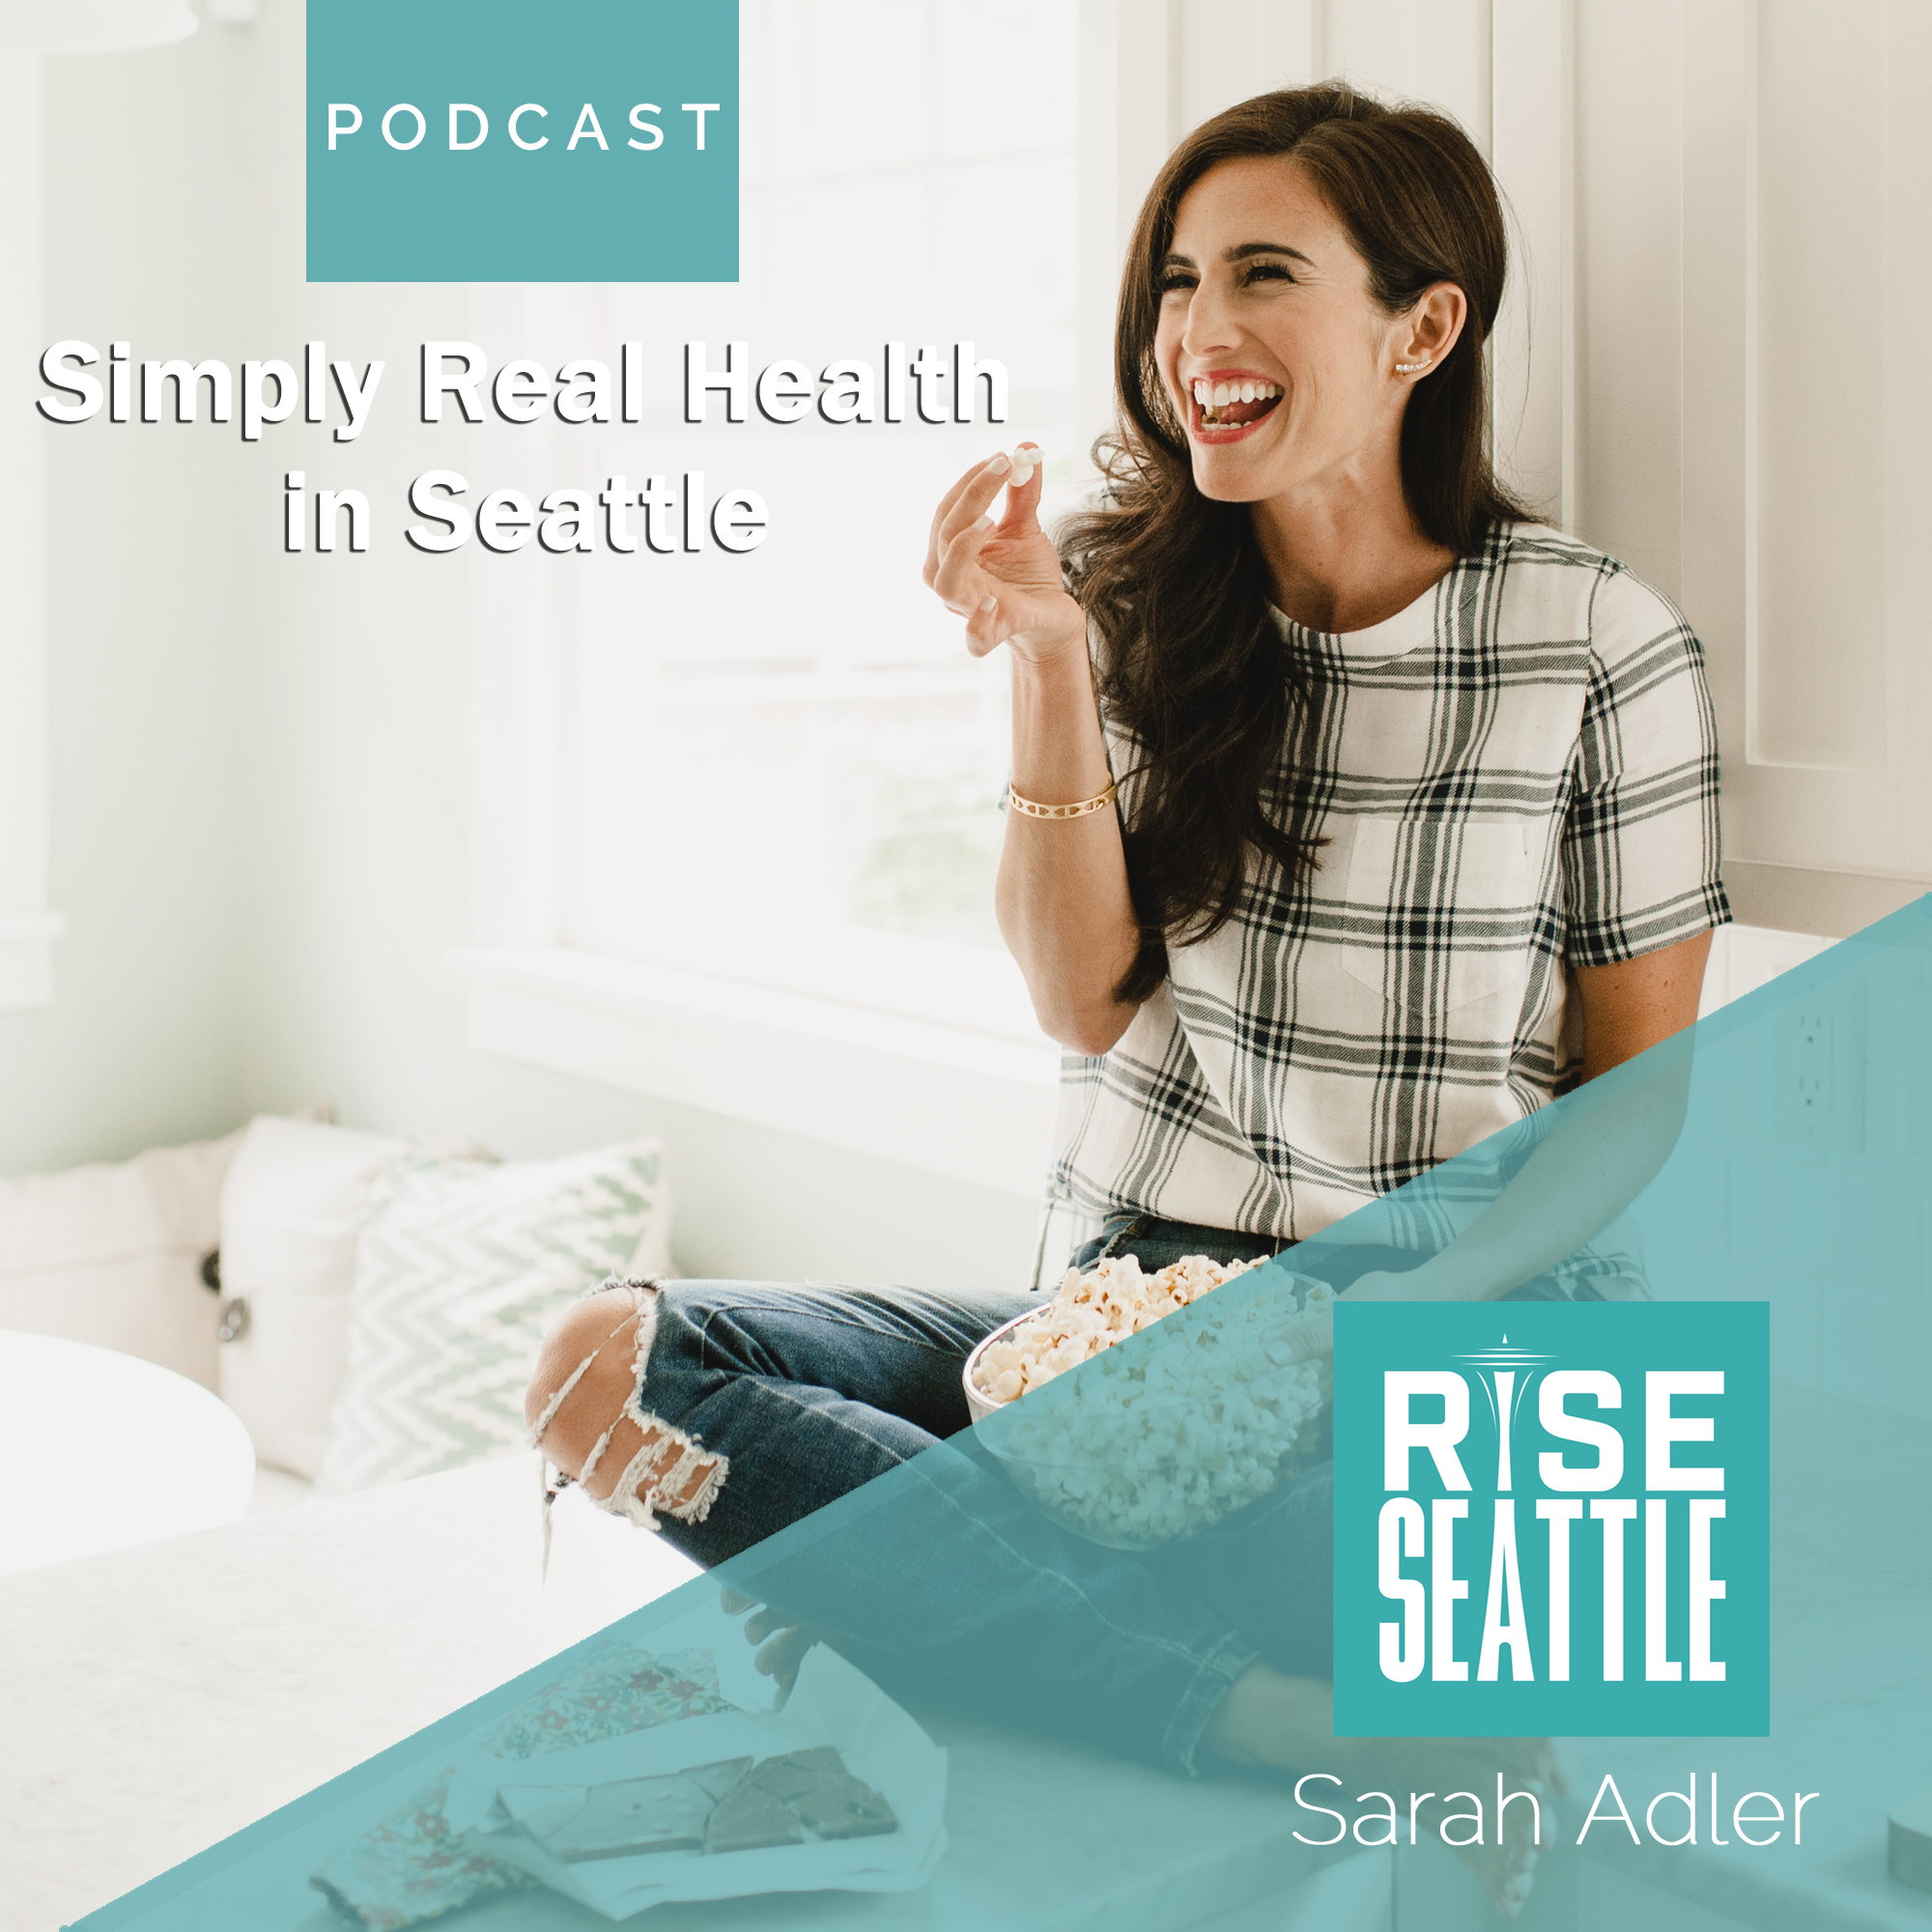 S1.E5. Sarah Adler: Simply Real Health in Seattle